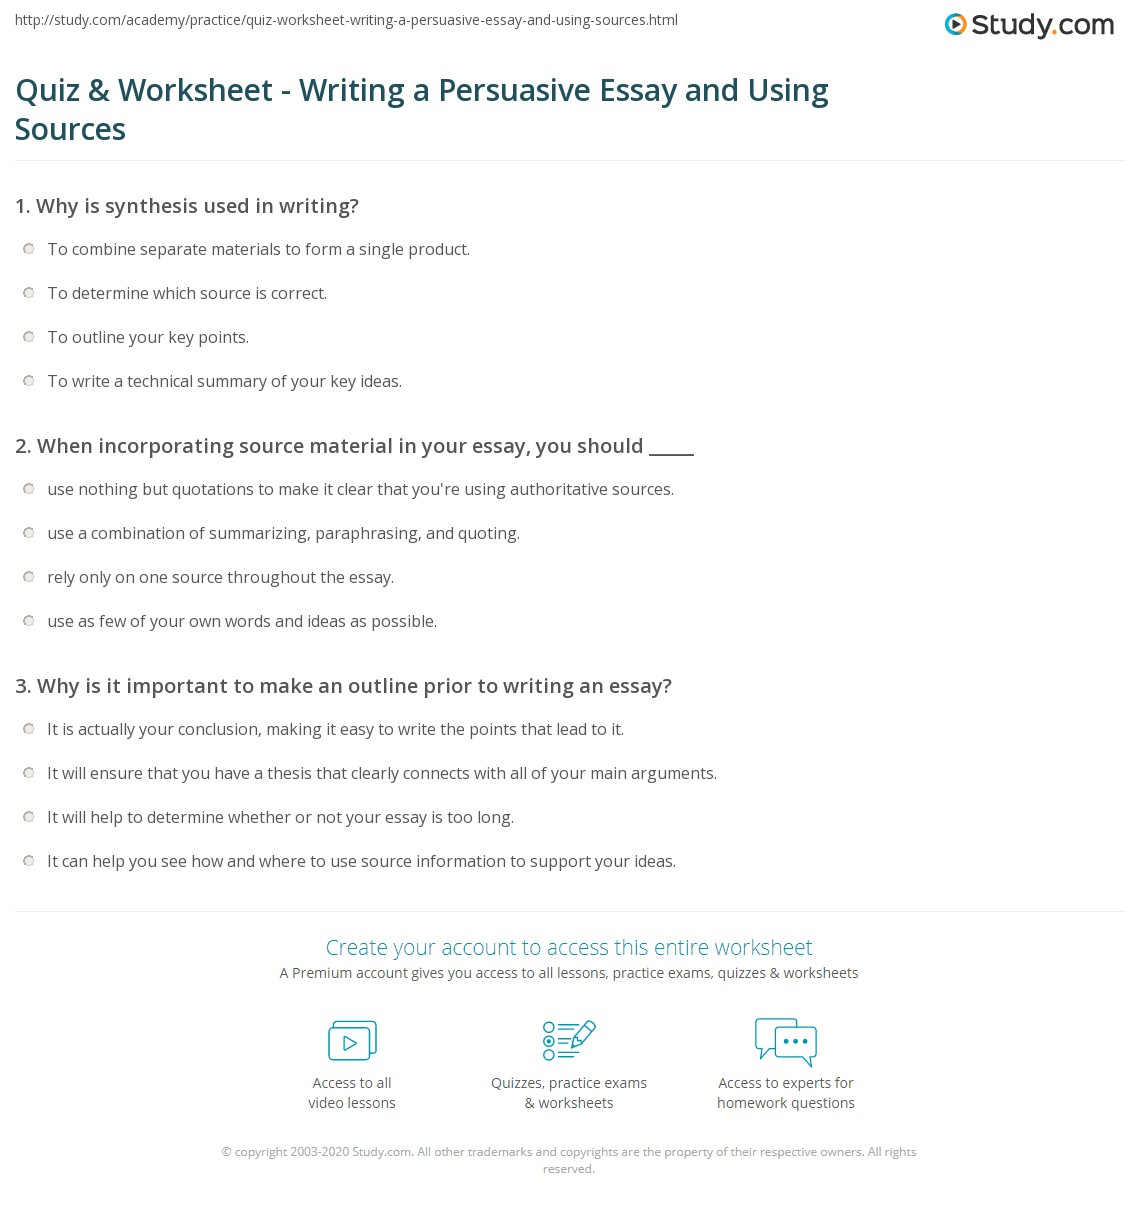 persuasive essay using i Free persuasive essay sample with persuasive essay outline find persuasive essay outline template on different persuasive essay outline formats.